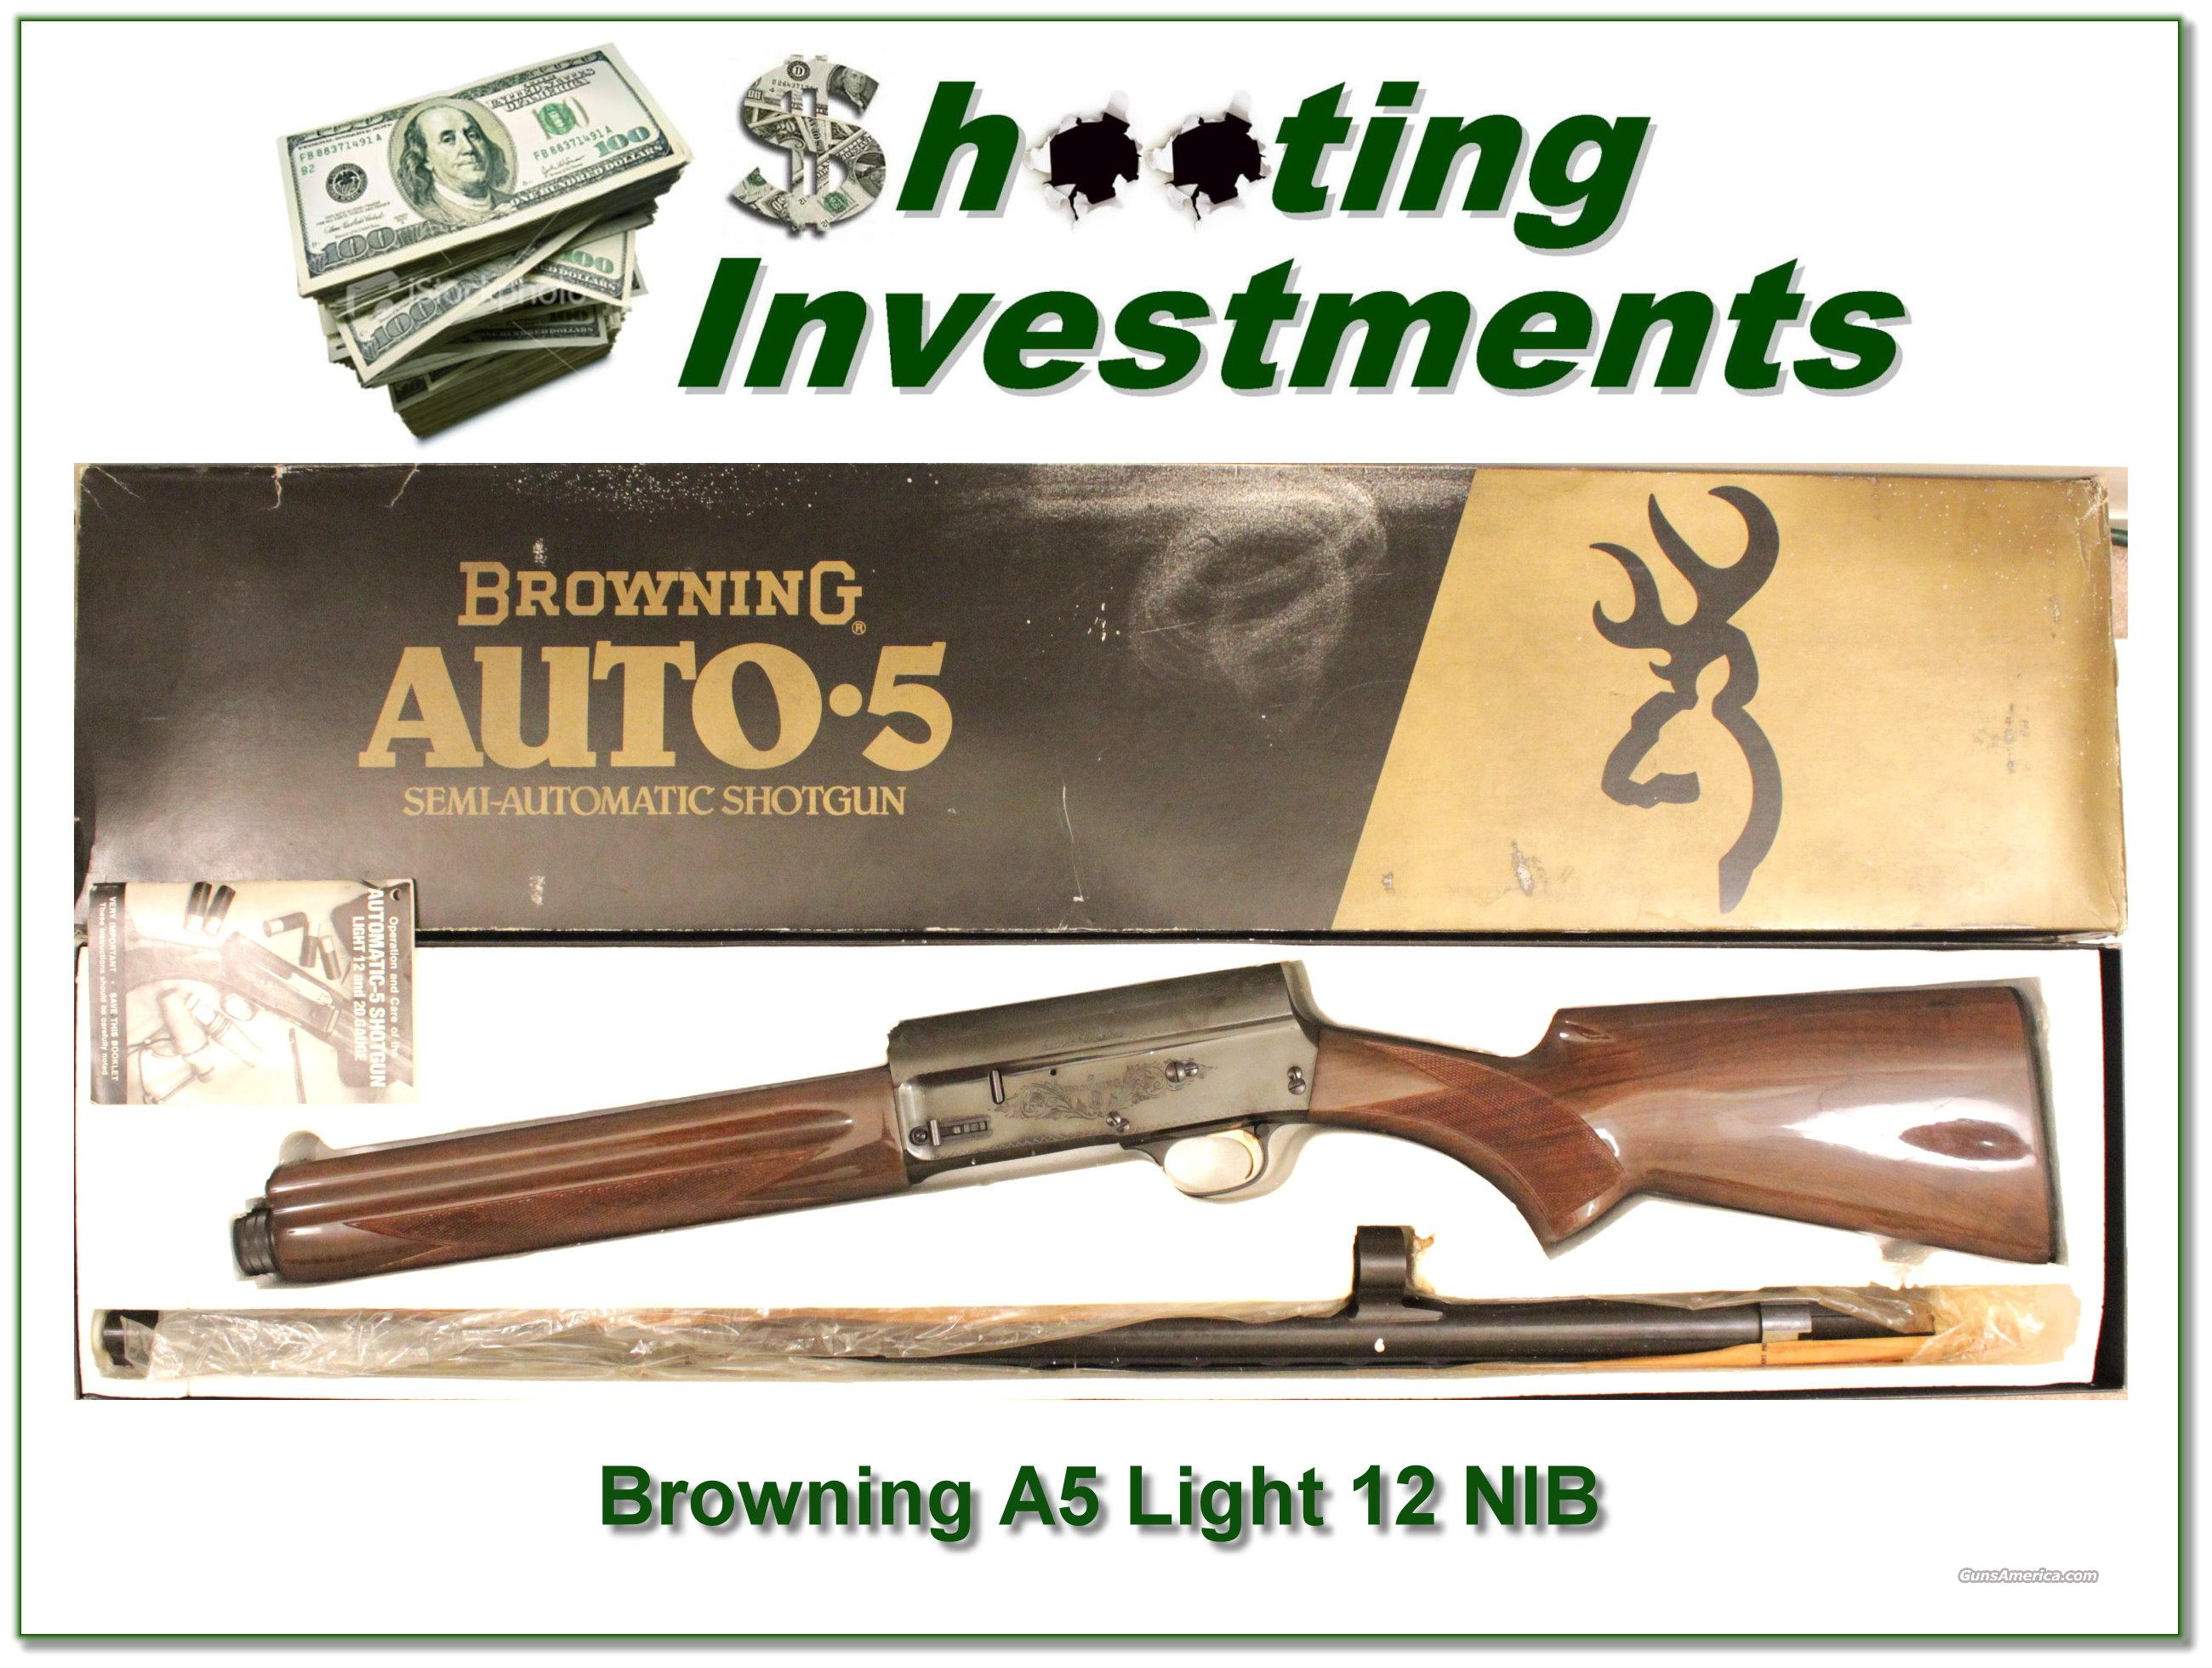 Browning A5 Light 12 NIB  Guns > Shotguns > Browning Shotguns > Autoloaders > Hunting